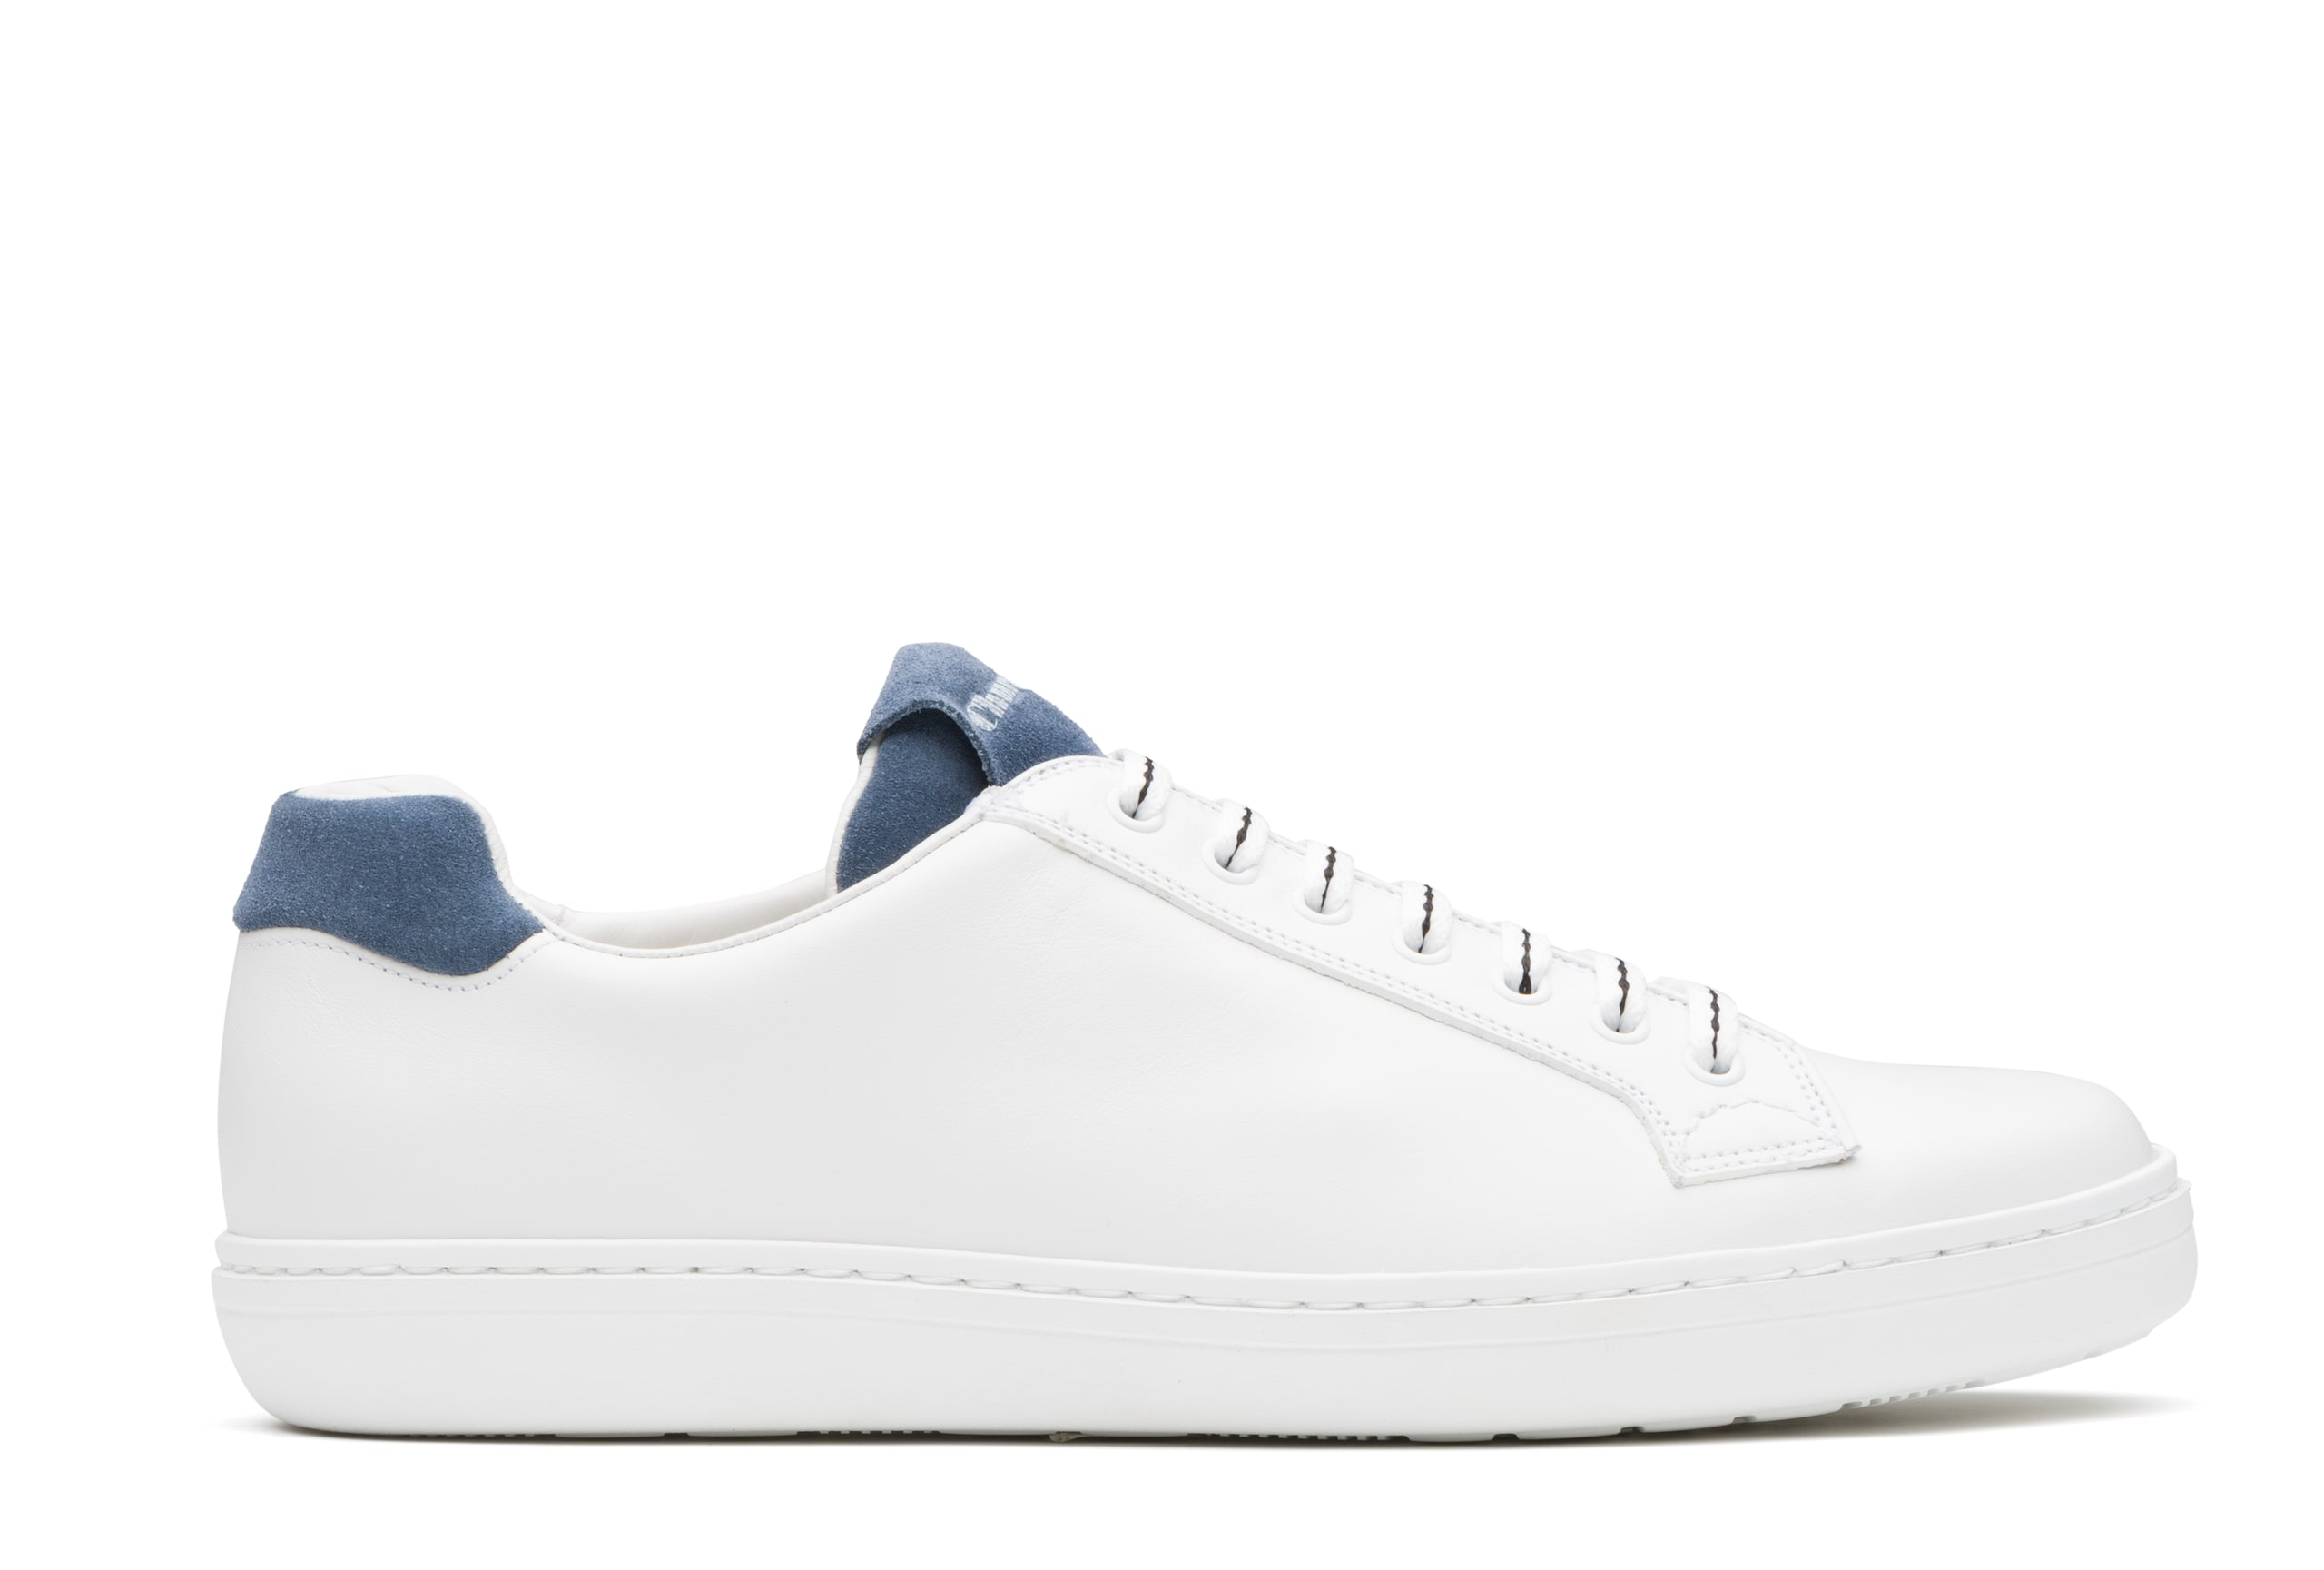 Boland plus 2 Church's Calf and Leather Suede Classic Sneaker White